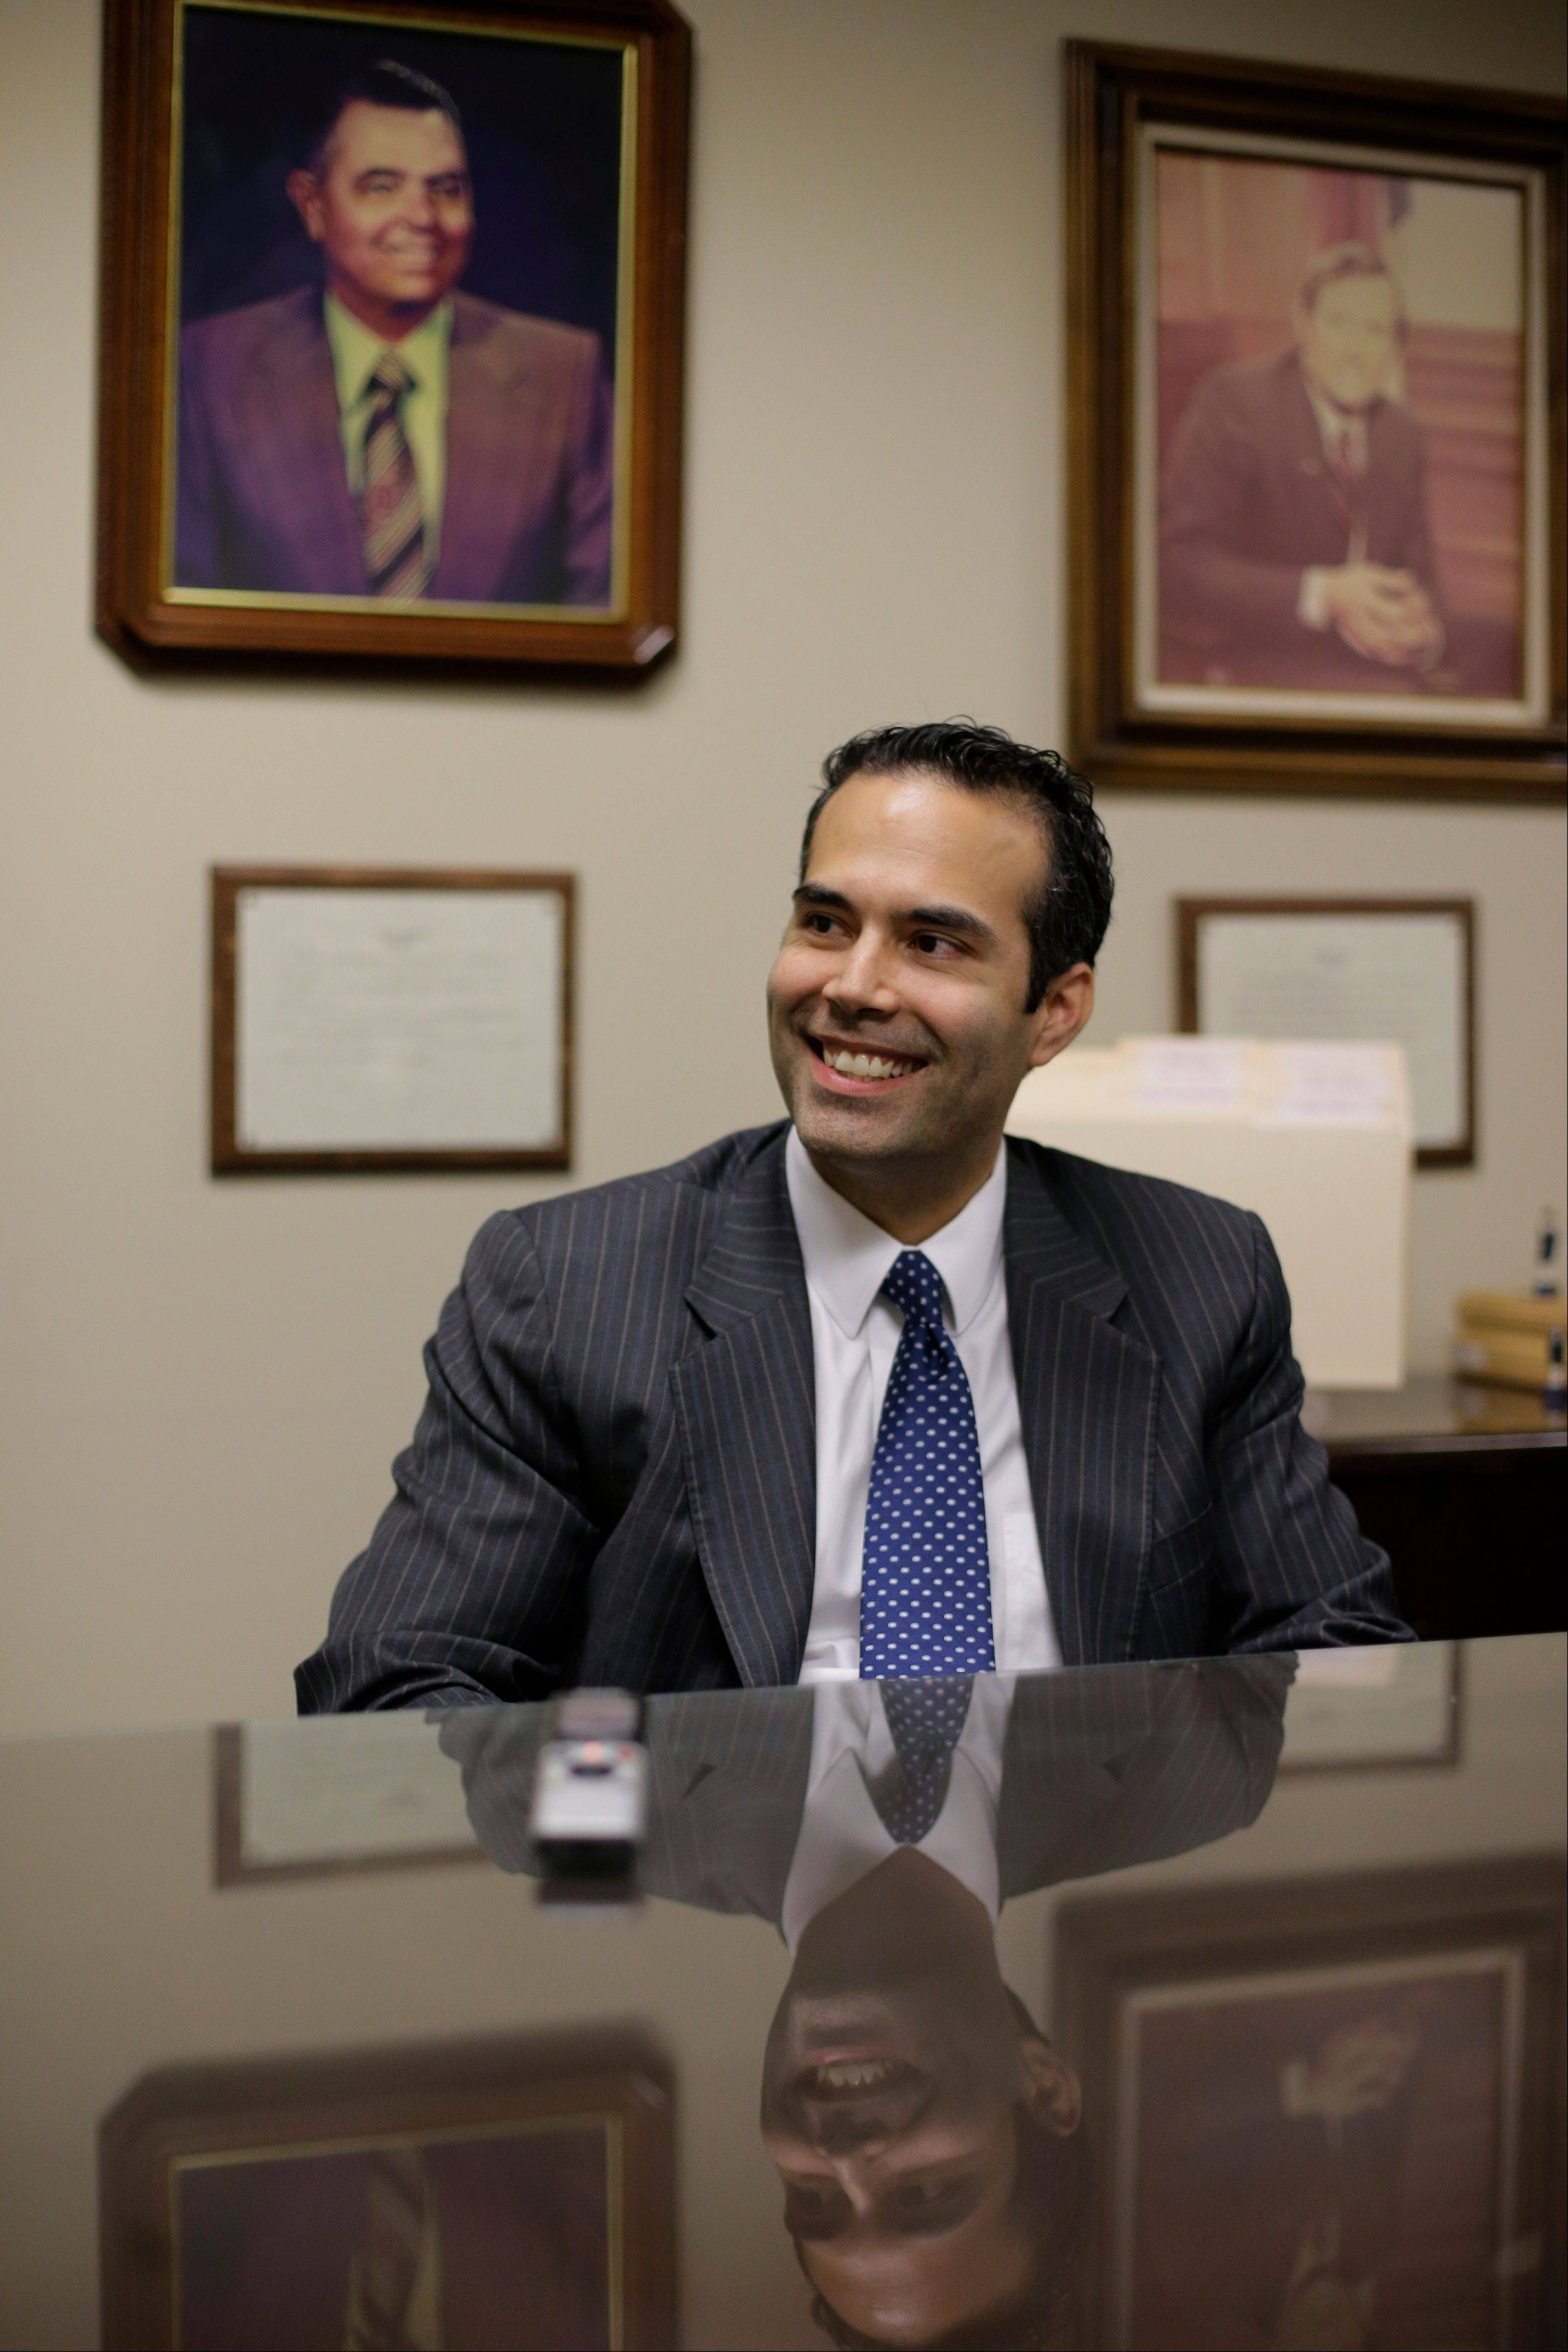 George P. Bush, the grandson of one former president and nephew of another, visits the Republican Party of Texas headquarters where he formally filed to run for Texas land commissioner, in Austin, Texas.